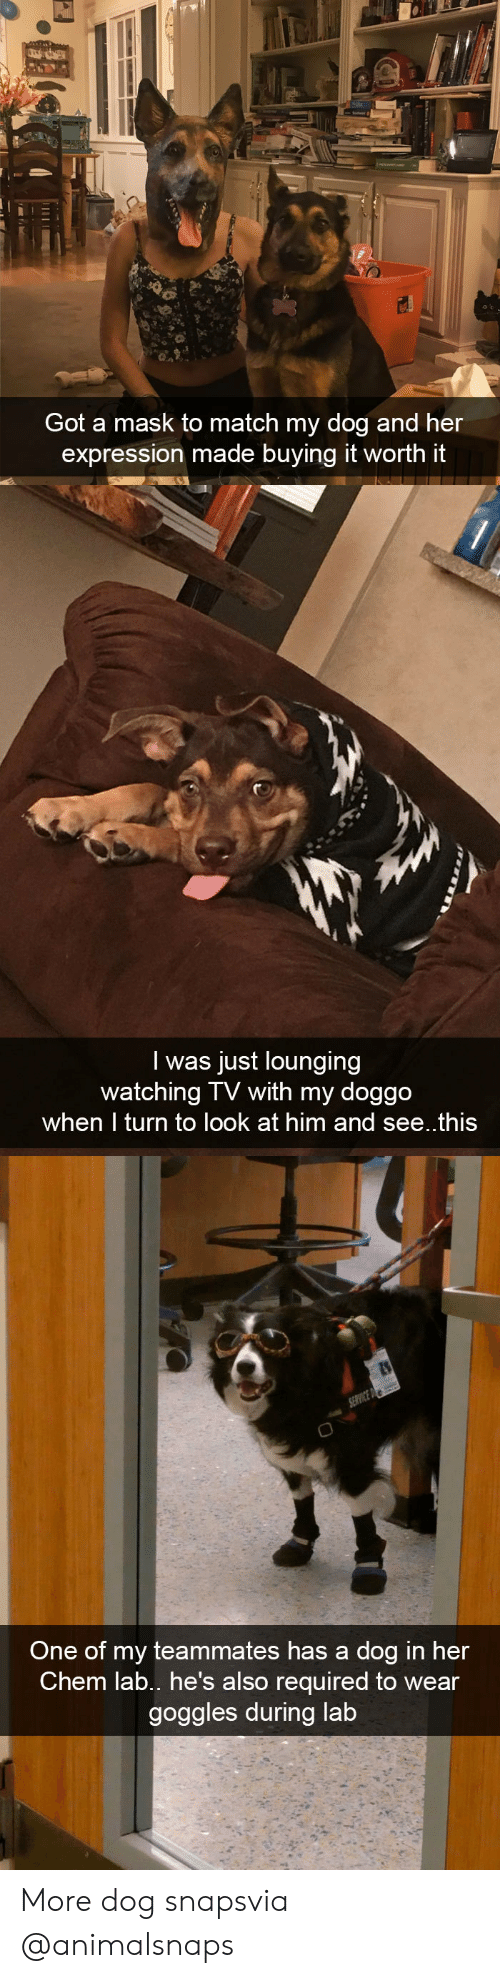 Target, Tumblr, and Http: Got a mask to match my dog and her  expression made buying it worth it   I was just lounging  watching TV with my doggo  when I turn to look at him and see..this   One of my teammates has a dog in her  Chem lab., he's also required to wear  goggles during lab More dog snapsvia @animalsnaps